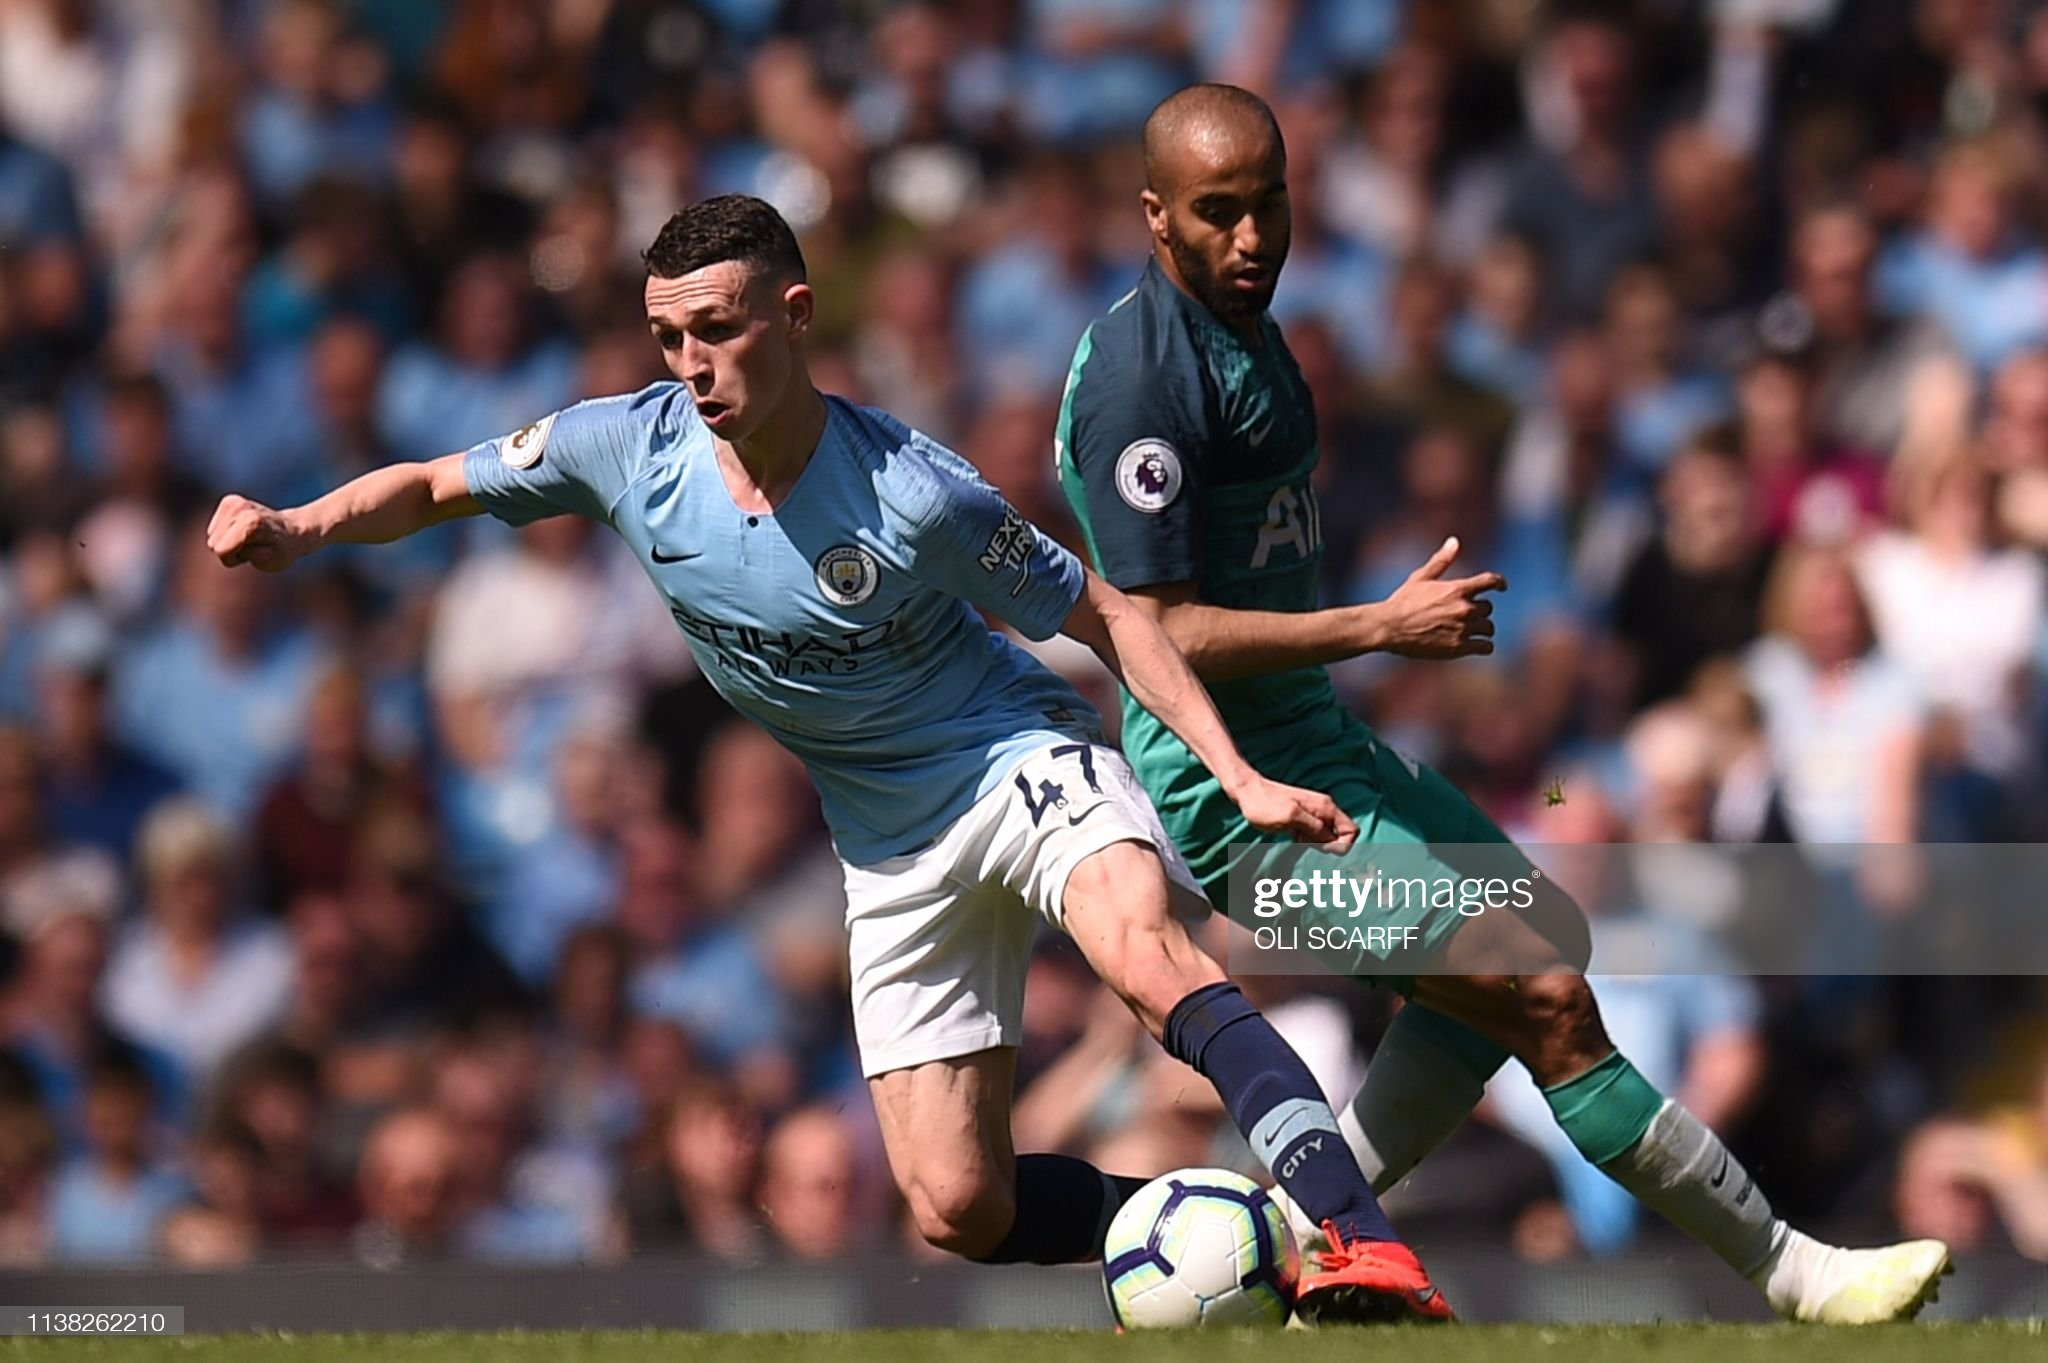 Manchester City vs Tottenham Preview, prediction and odds